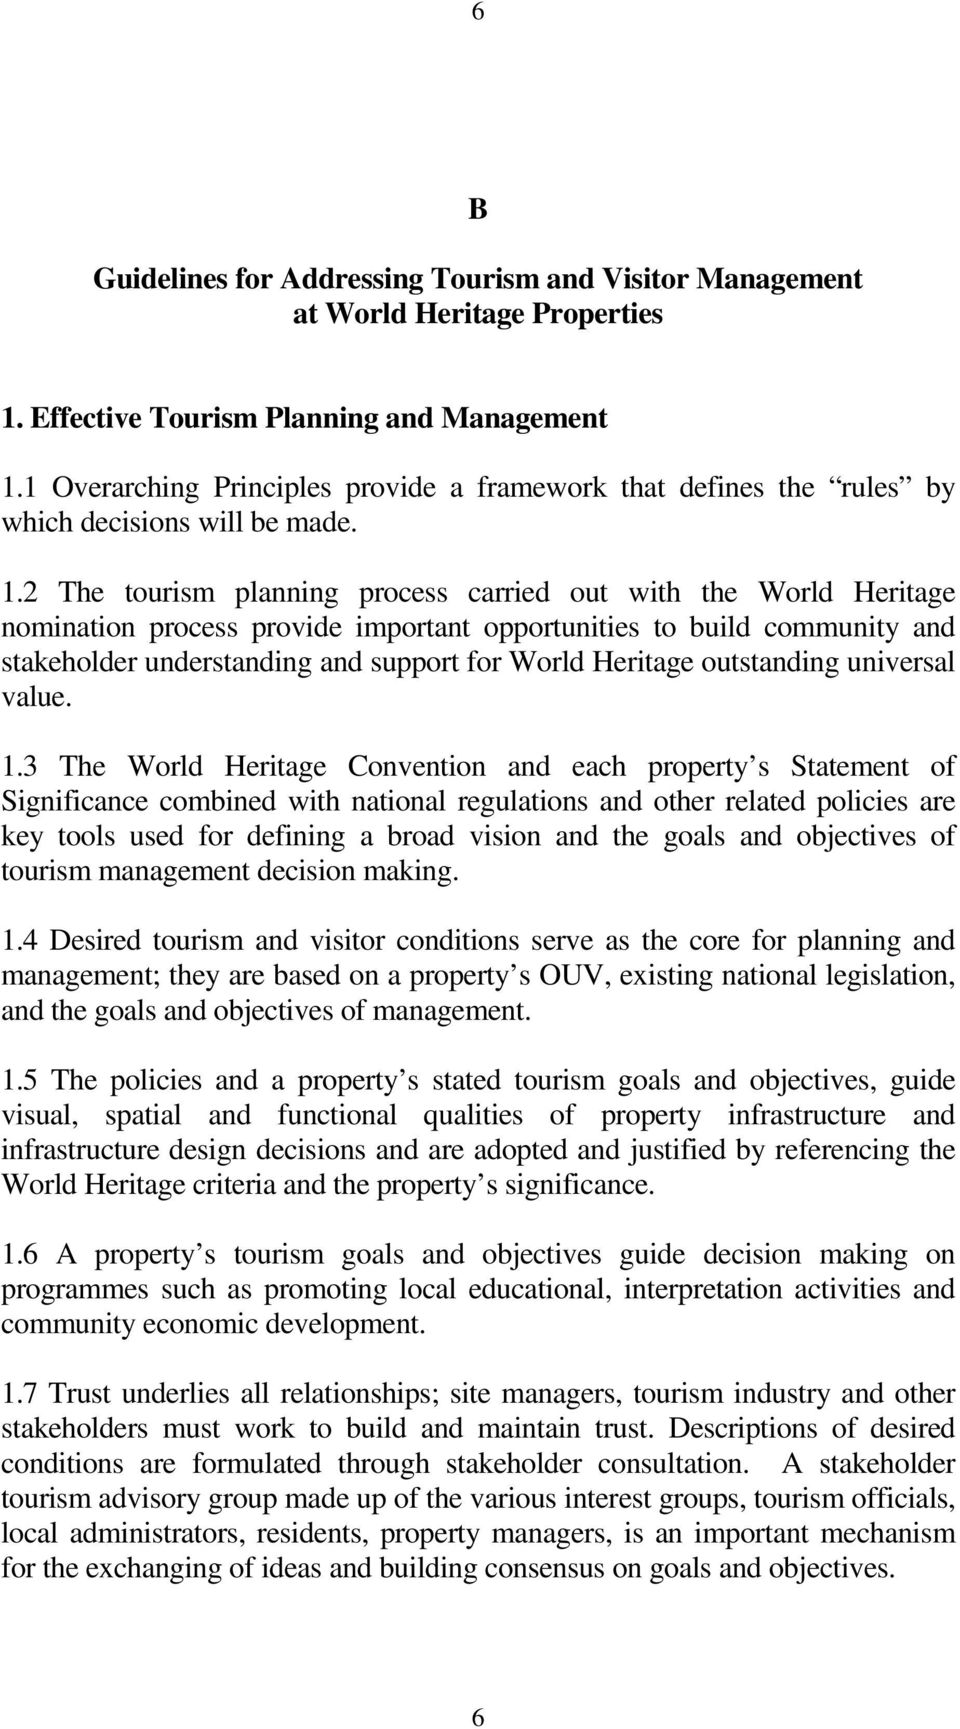 2 The tourism planning process carried out with the World Heritage nomination process provide important opportunities to build community and stakeholder understanding and support for World Heritage